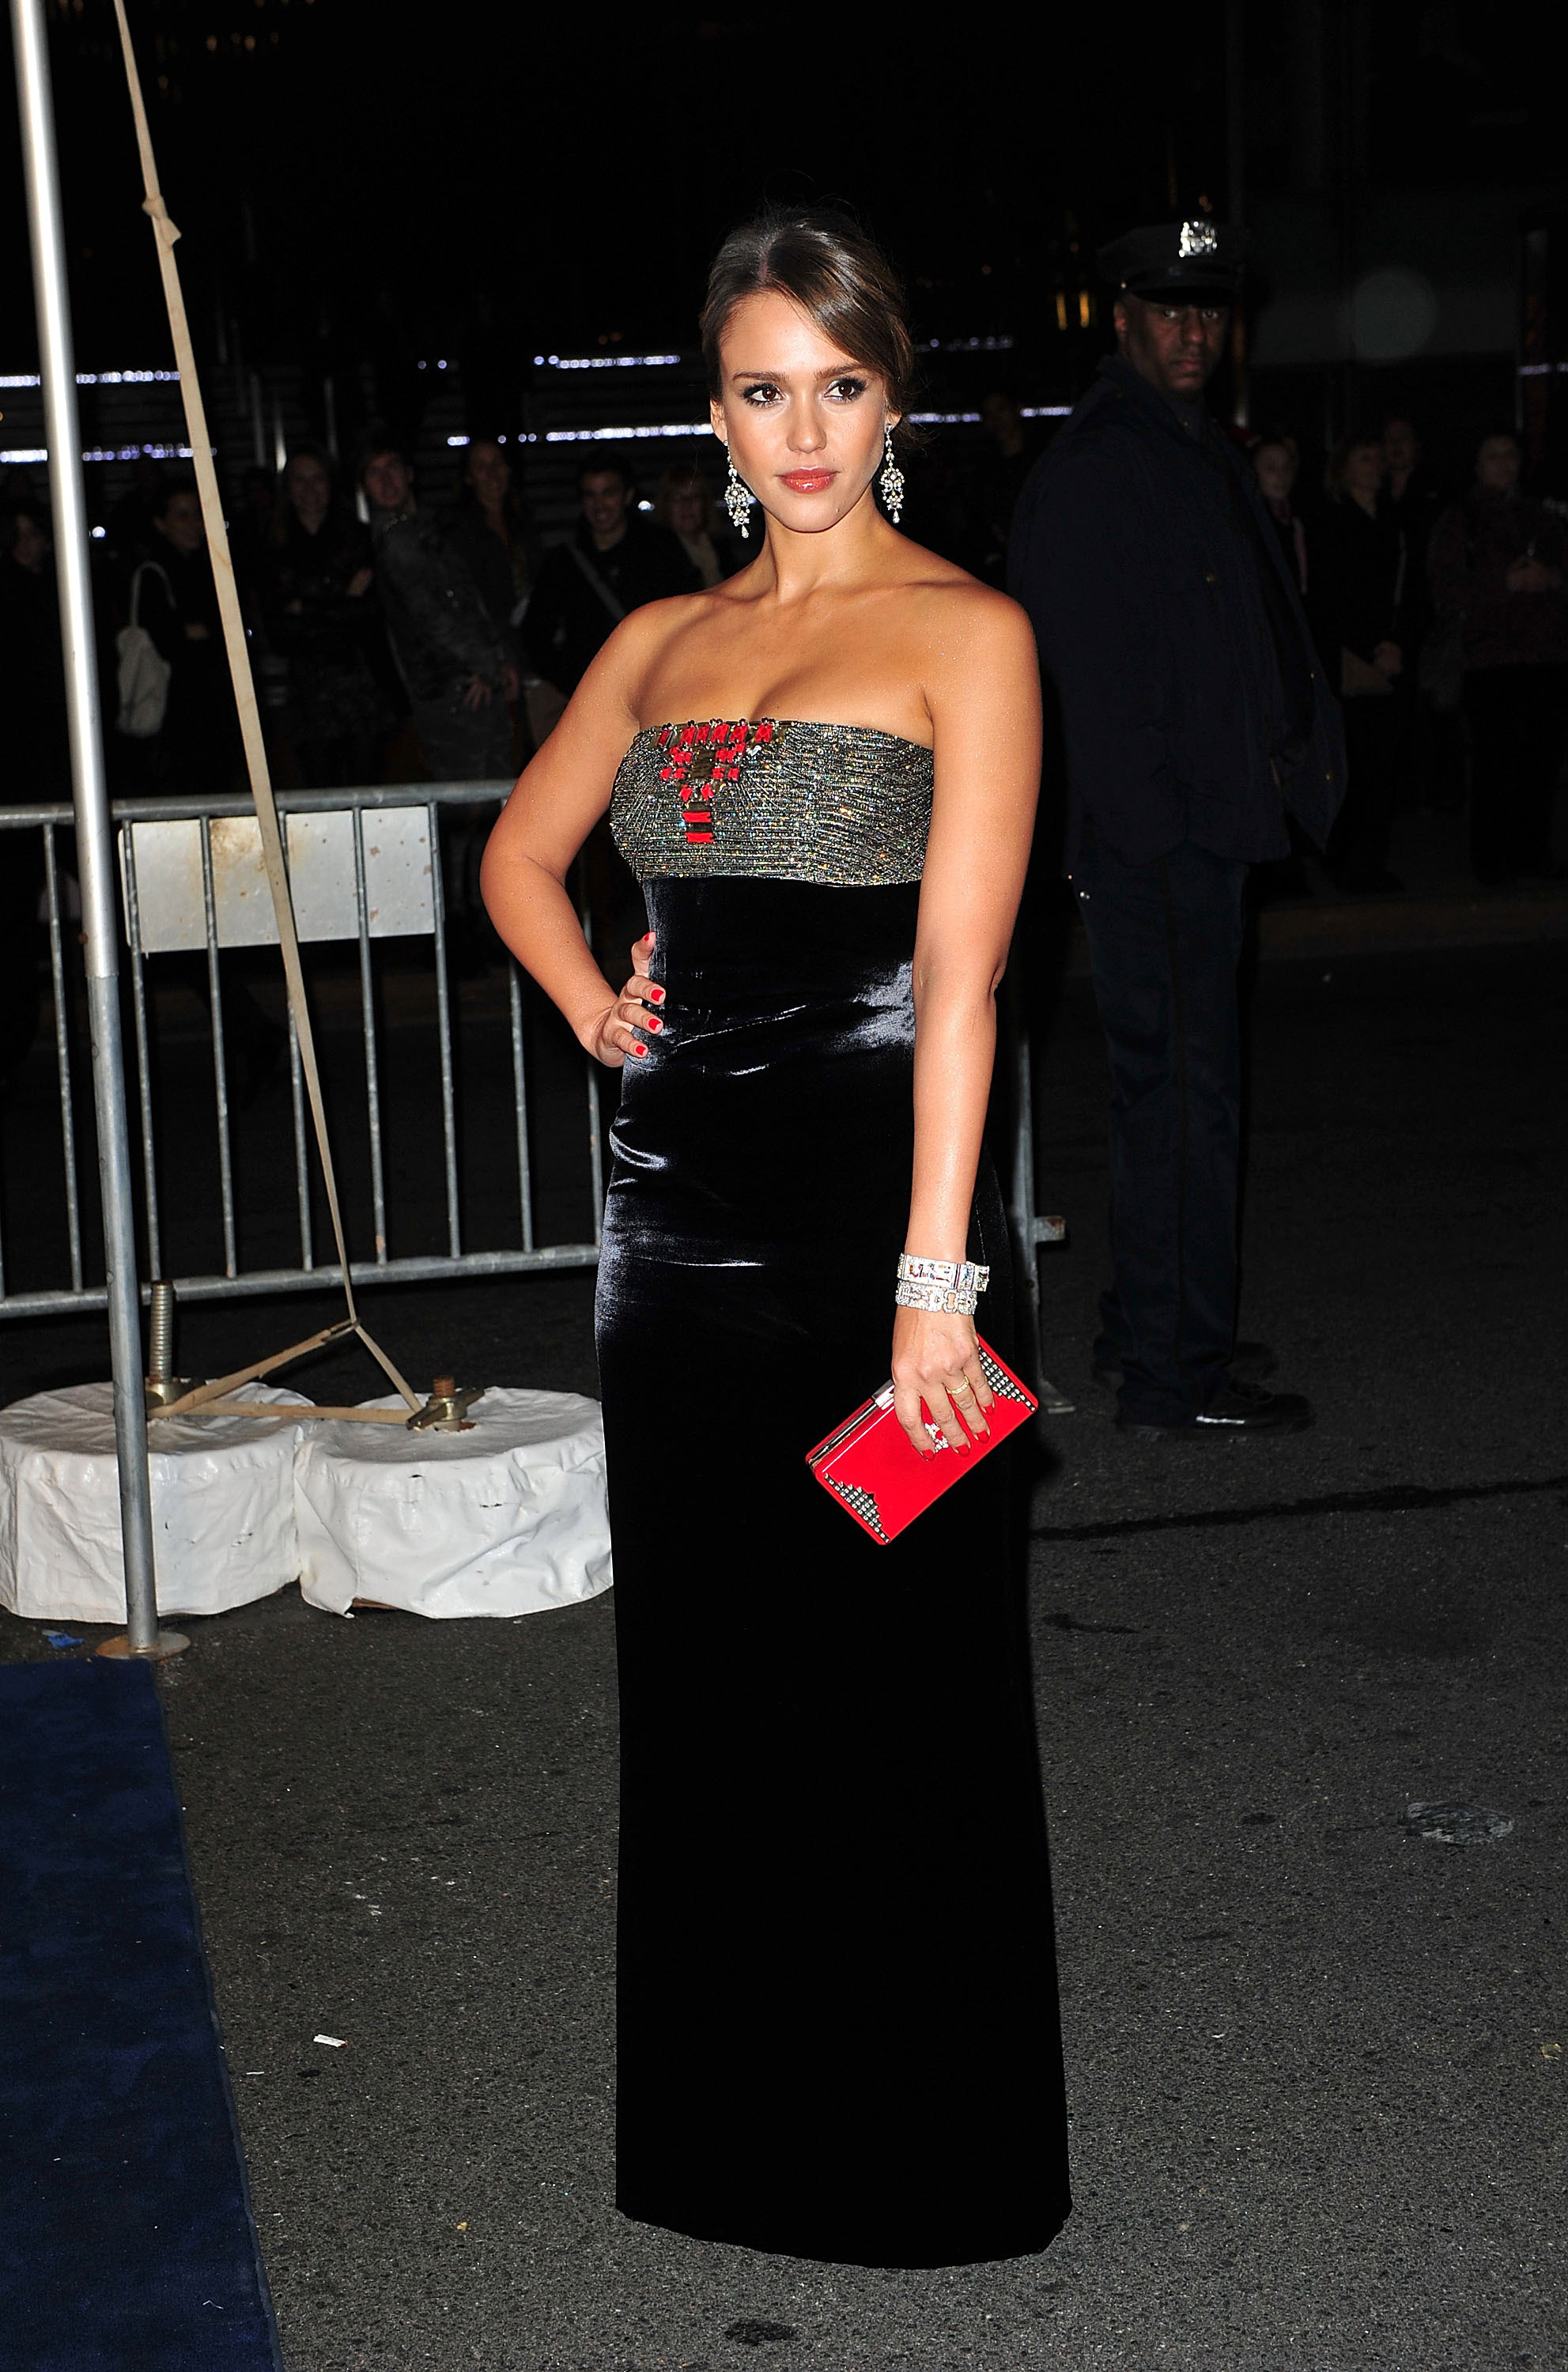 Jessica Alba carried a red clutch to a NYC event.